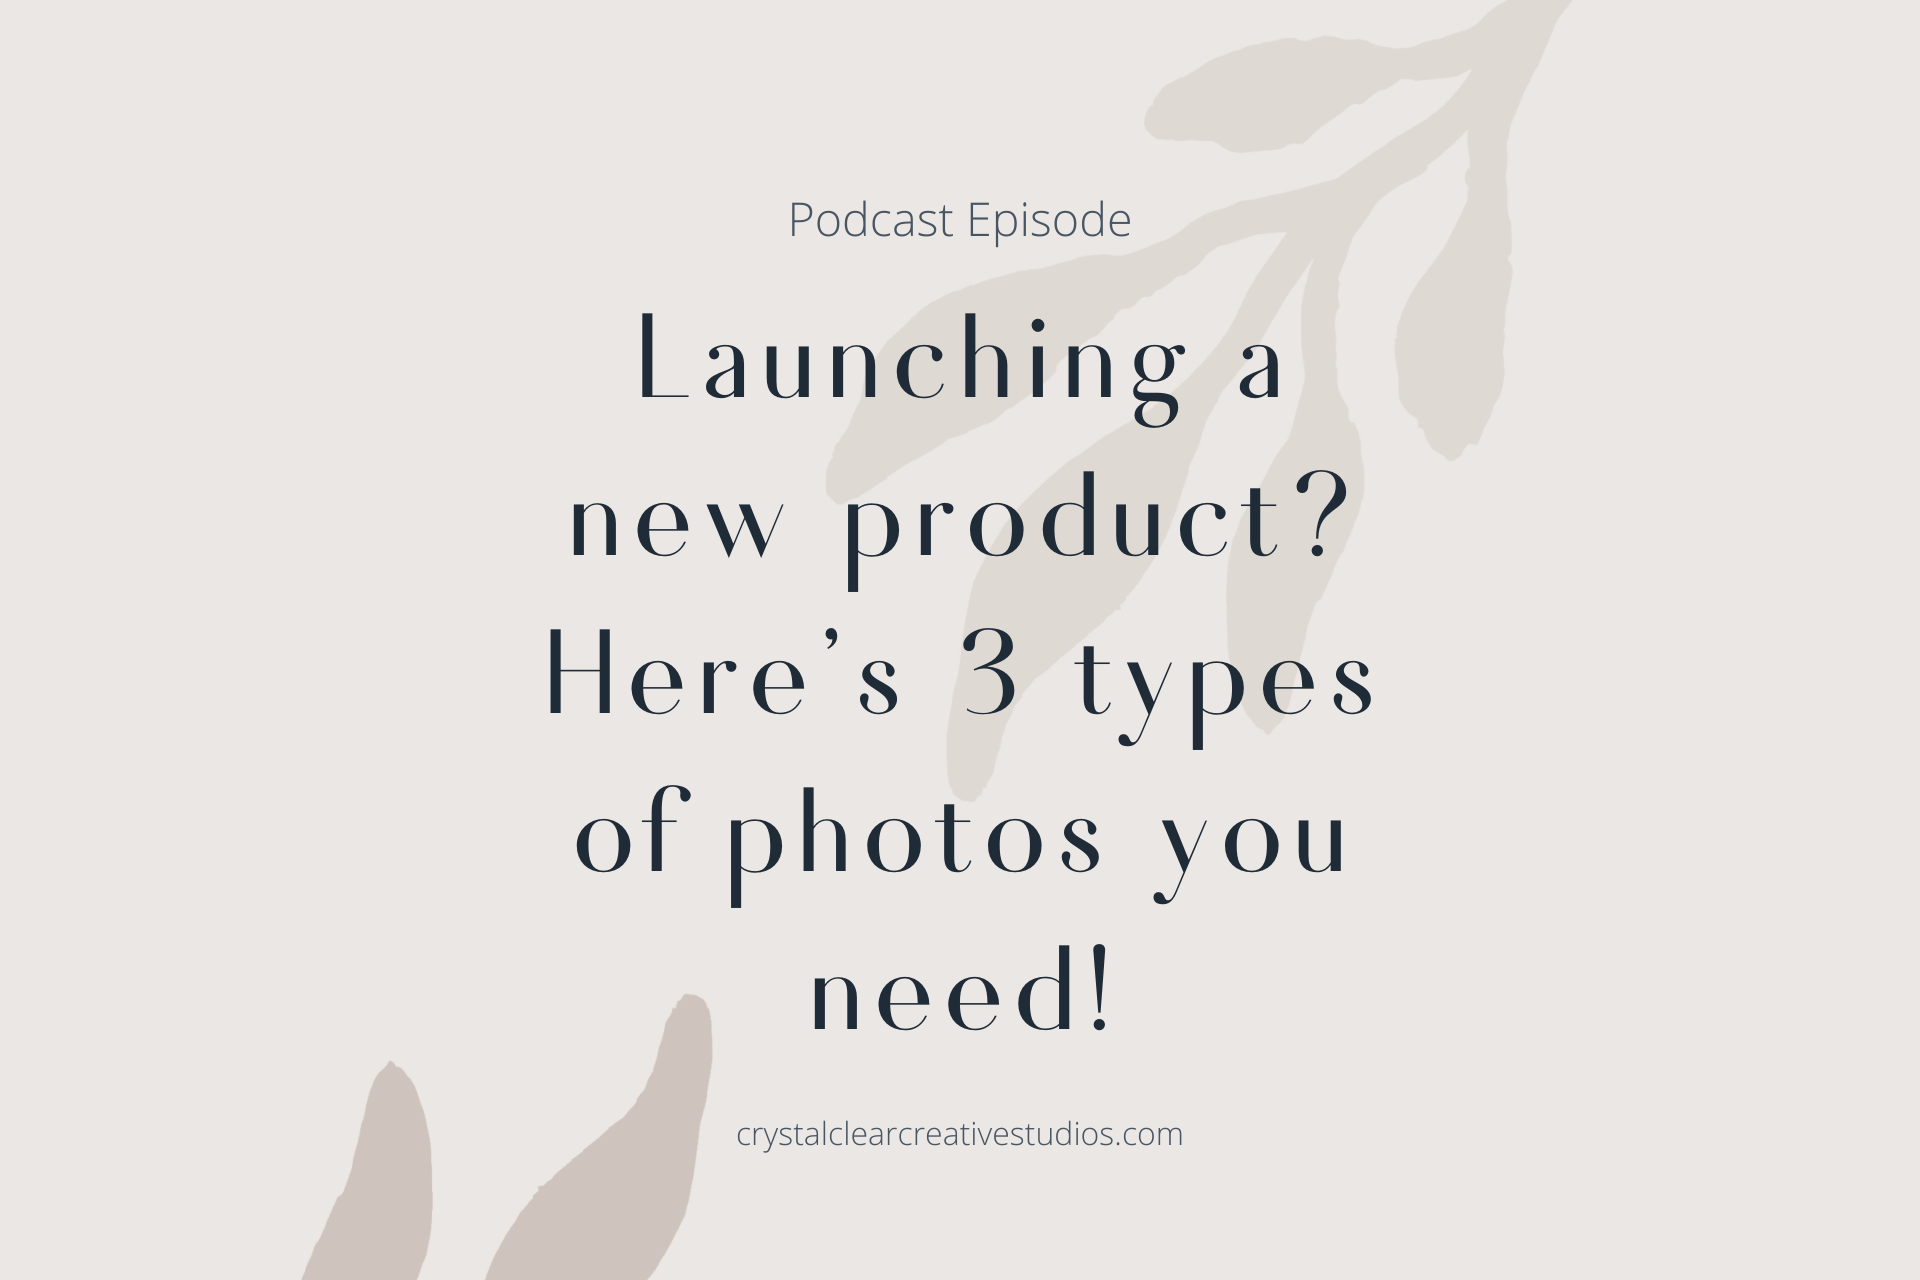 Launching a New Product? Here's 3 Types of Photos You Need!